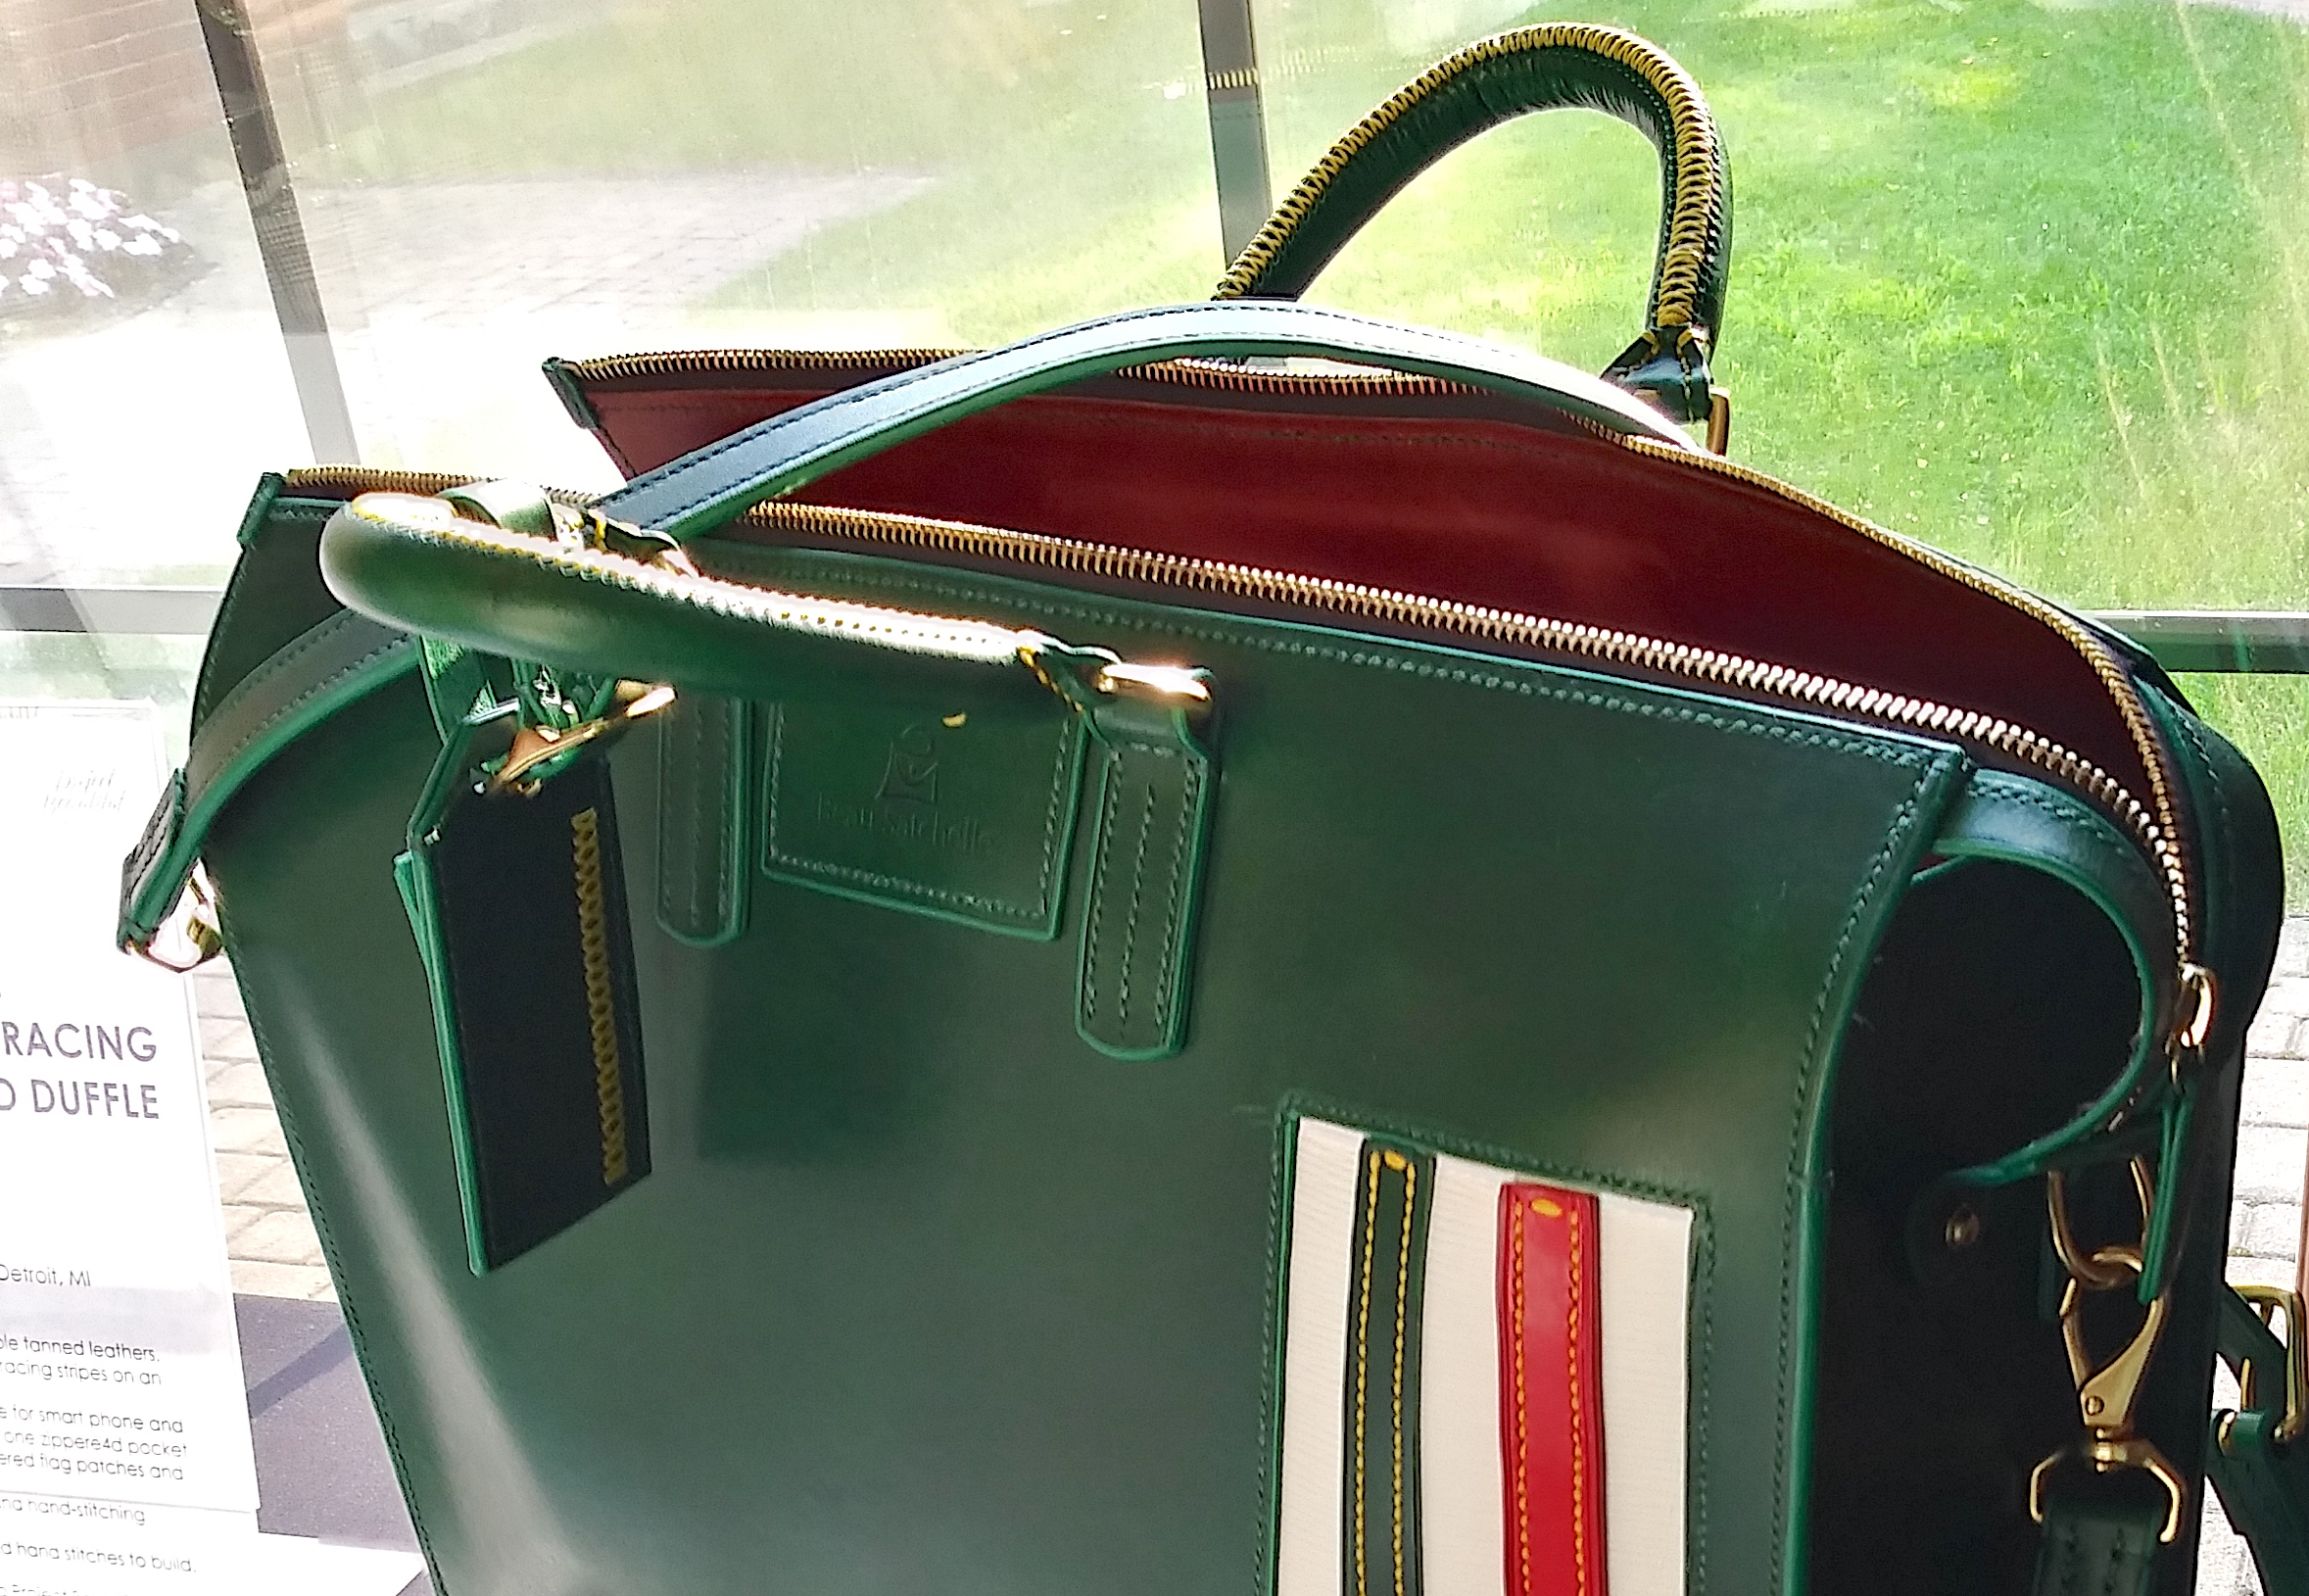 Read more about the article Product Reveal: Italian Racing Inspired Duffle Bag